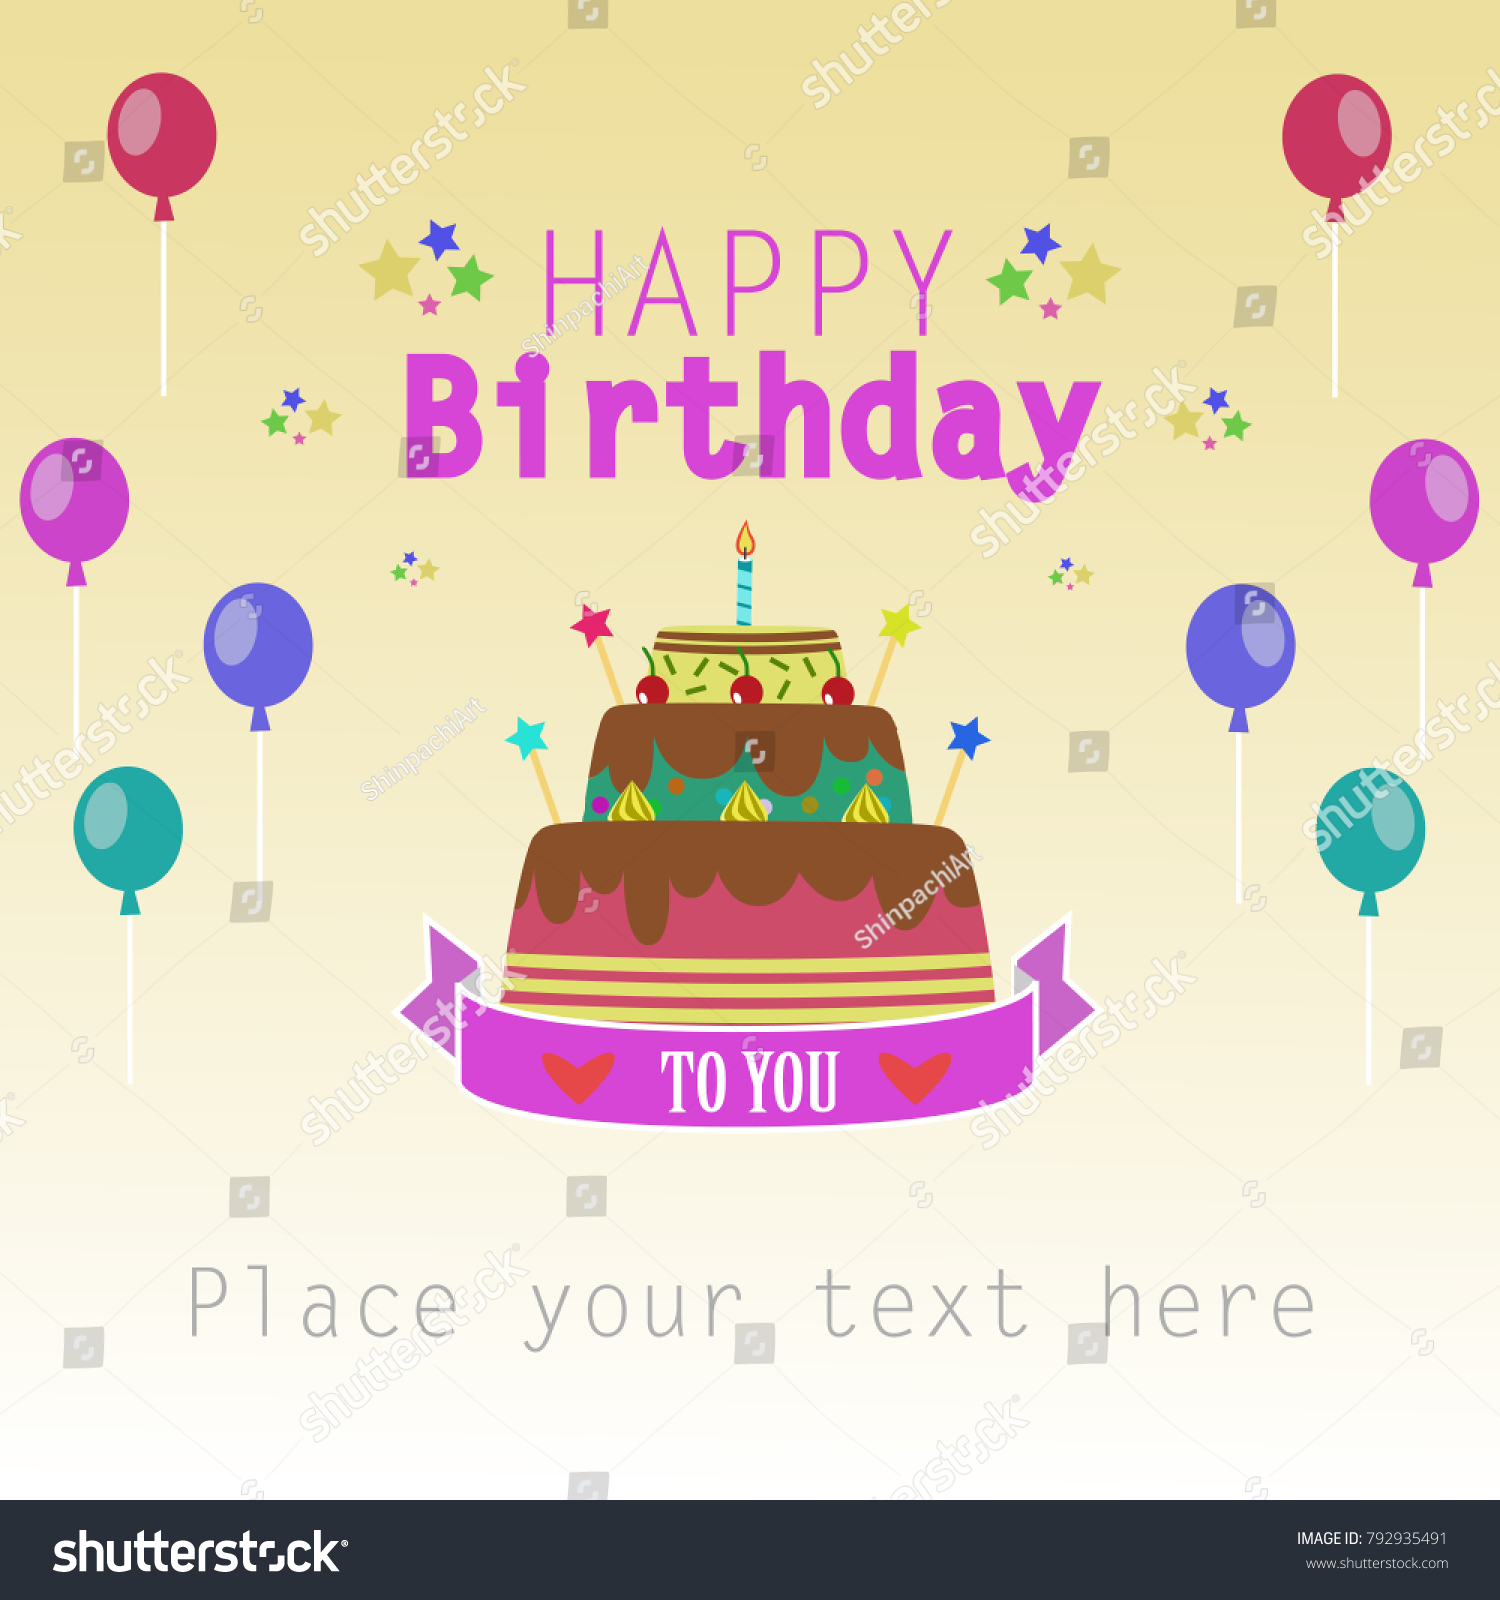 Happy Birthday Cake With Candle And Text For Greeting Card Poster Template